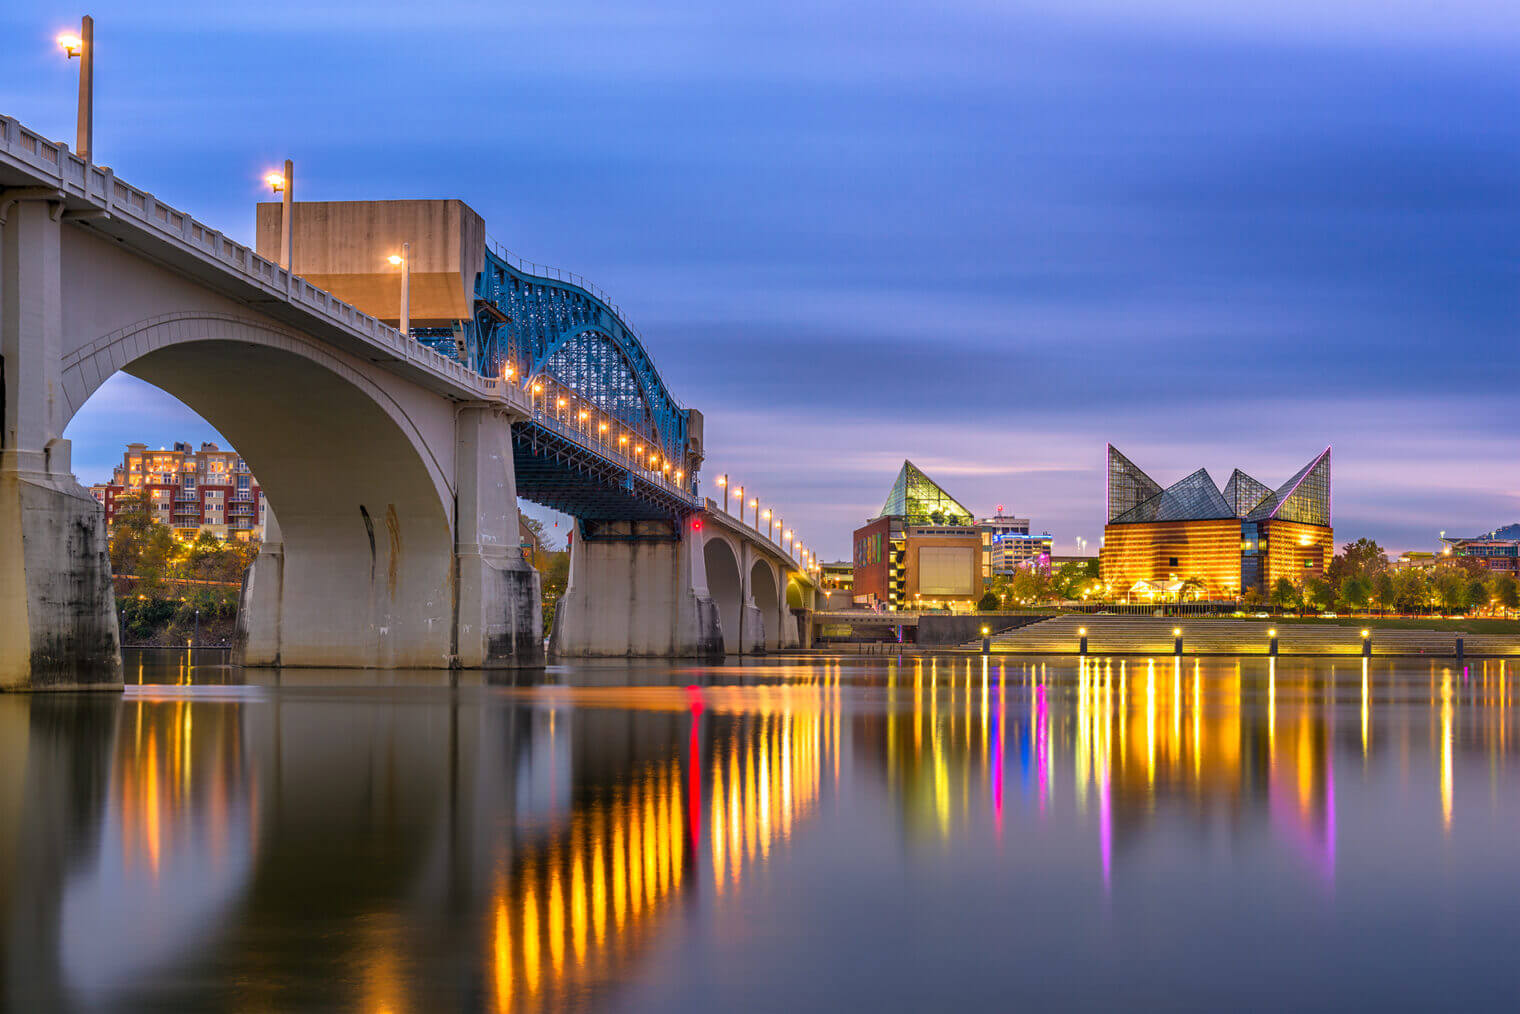 Tennessee River in downtown Chattanooga, view of Aquarium